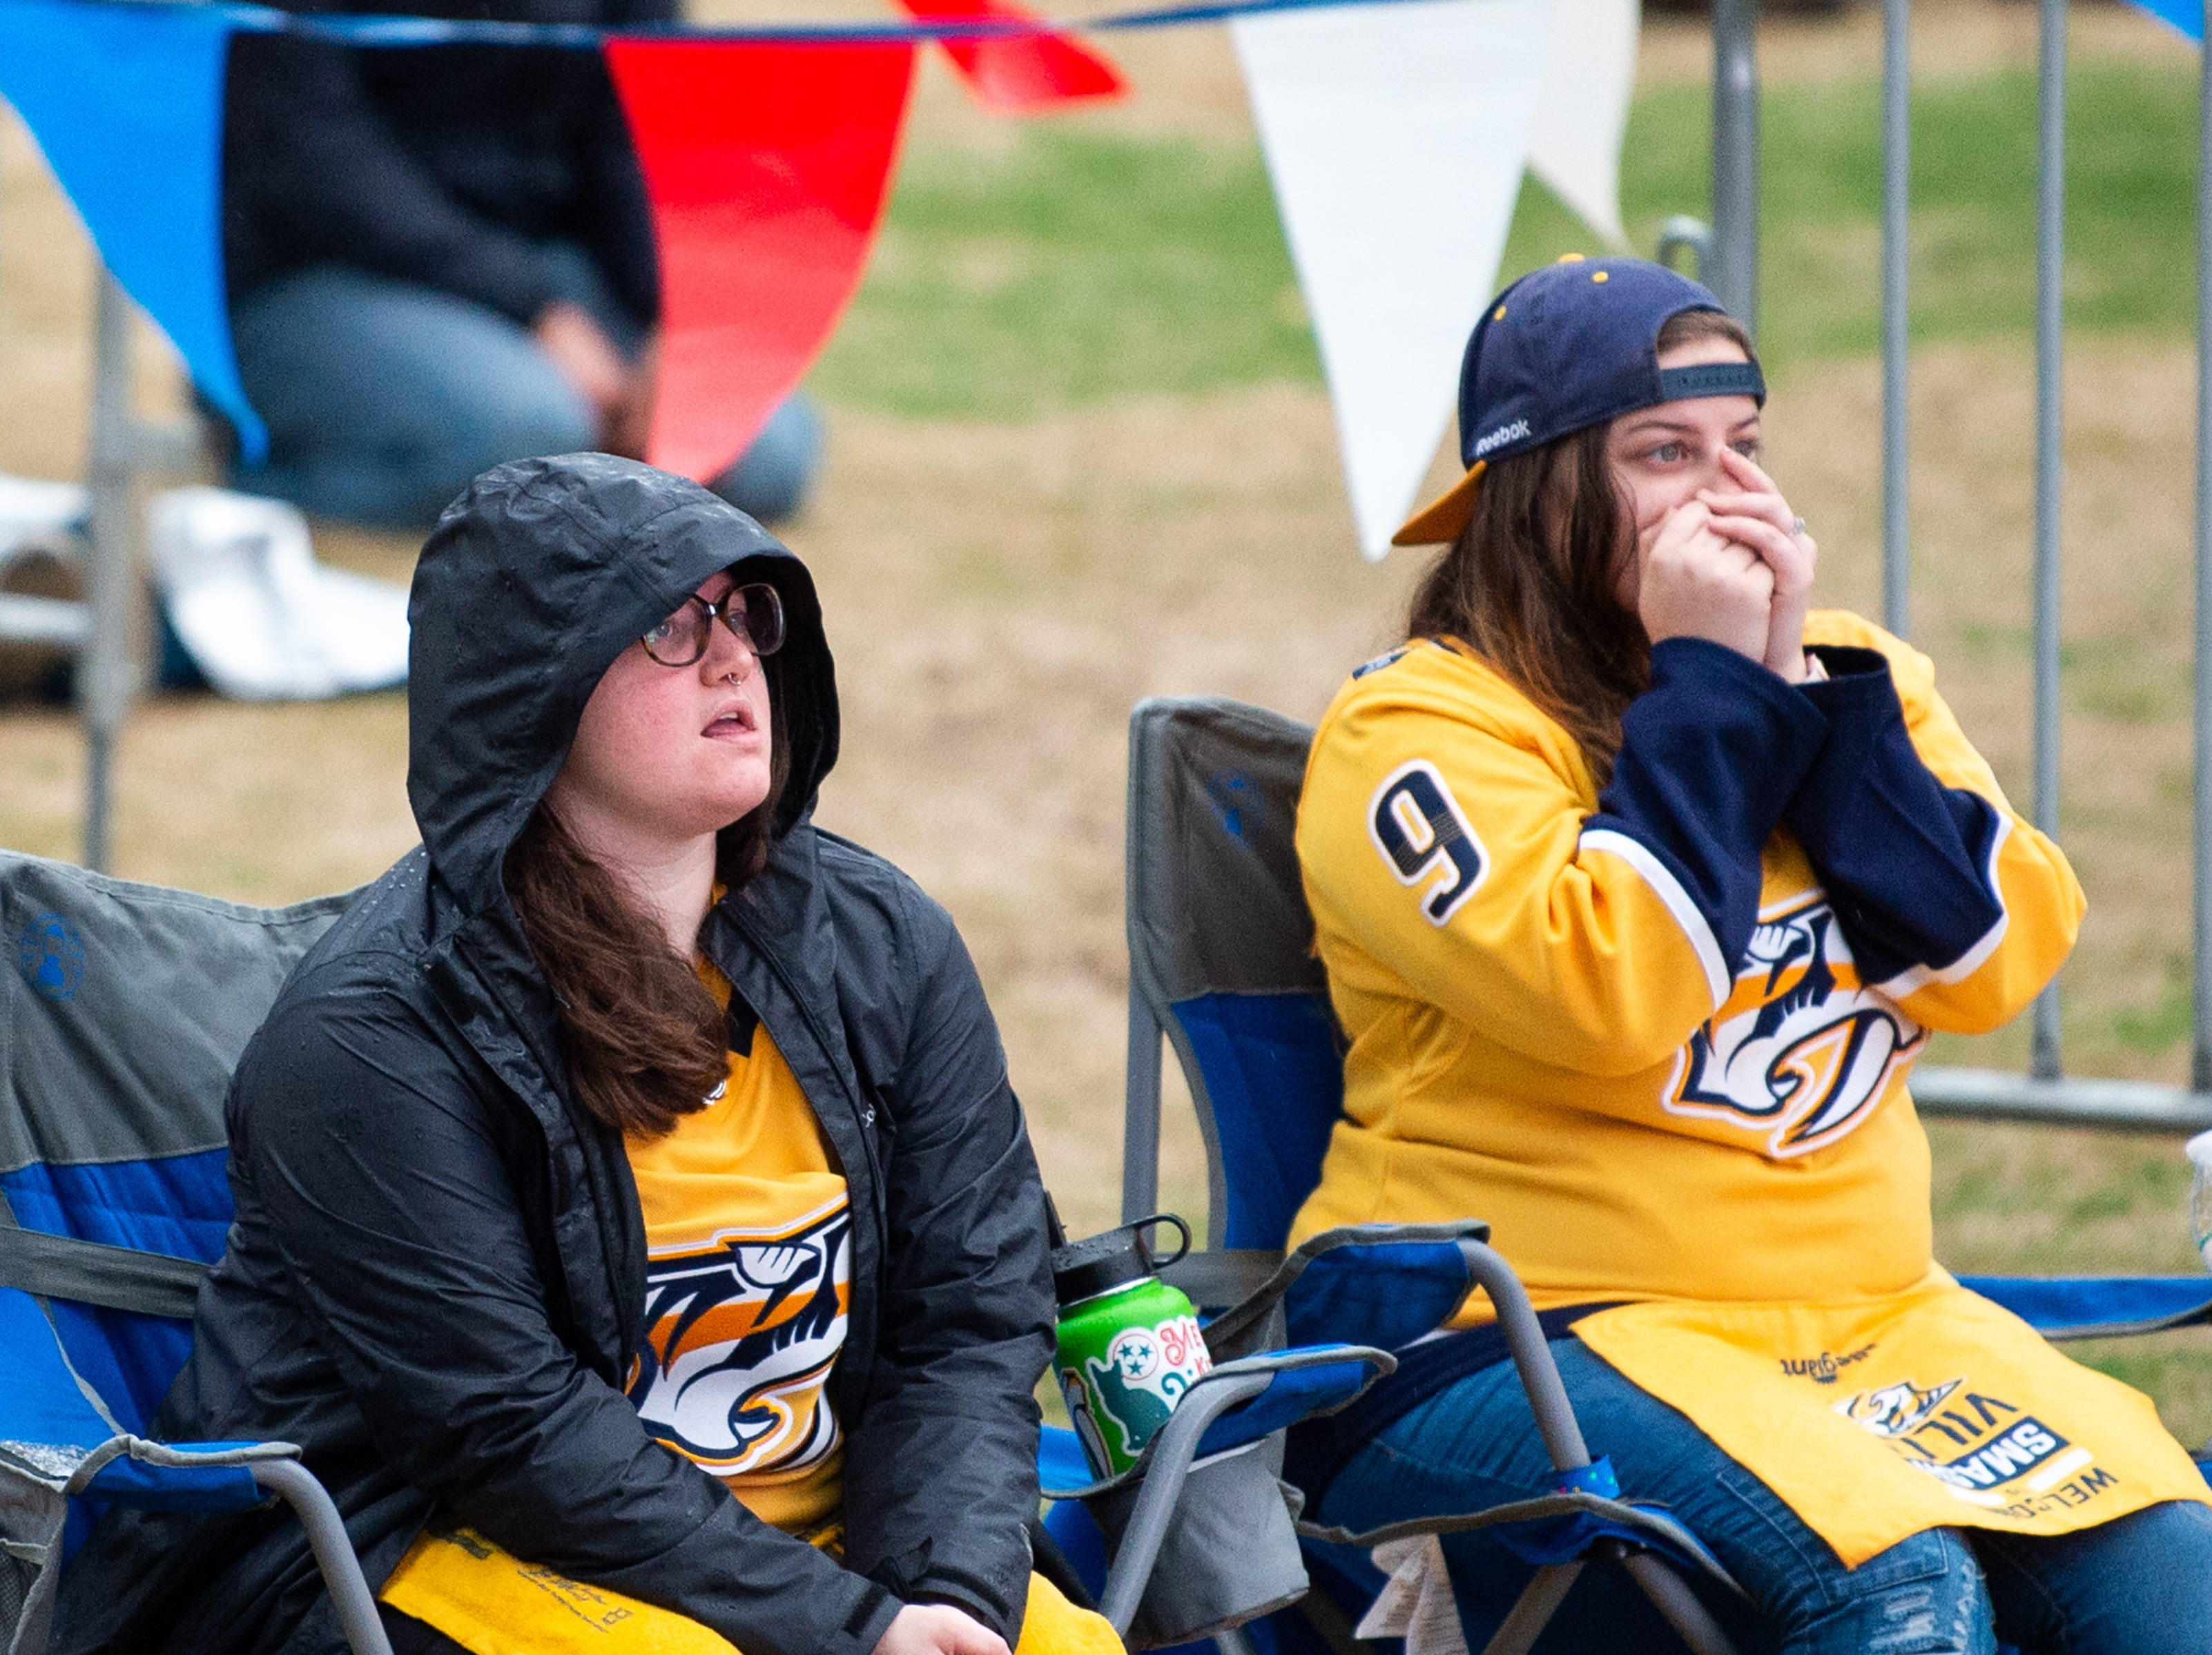 Sisters Kelly and Sophia Campbell watch the second period of the Nashville Predators game against the Dallas Stars at Preds Party in the Park at Walk of Fame Park Saturday, April 13, 2019, in Nashville, Tenn.